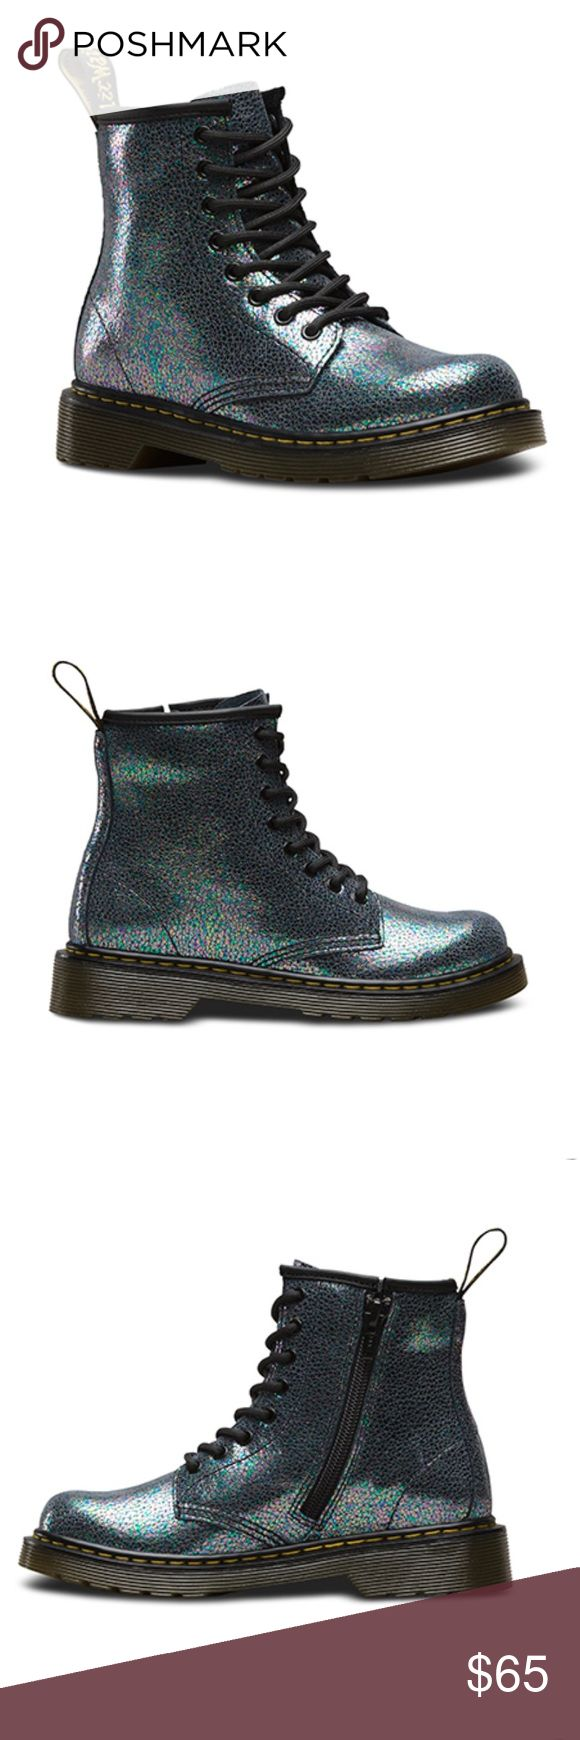 Dr. Martens Delaney Glitter brand new never worn dr. Martens Delaney glitter size 5 boots. Does not come with the box. Let me know if you have any questions (: Dr. Martens Shoes Combat & Moto Boots